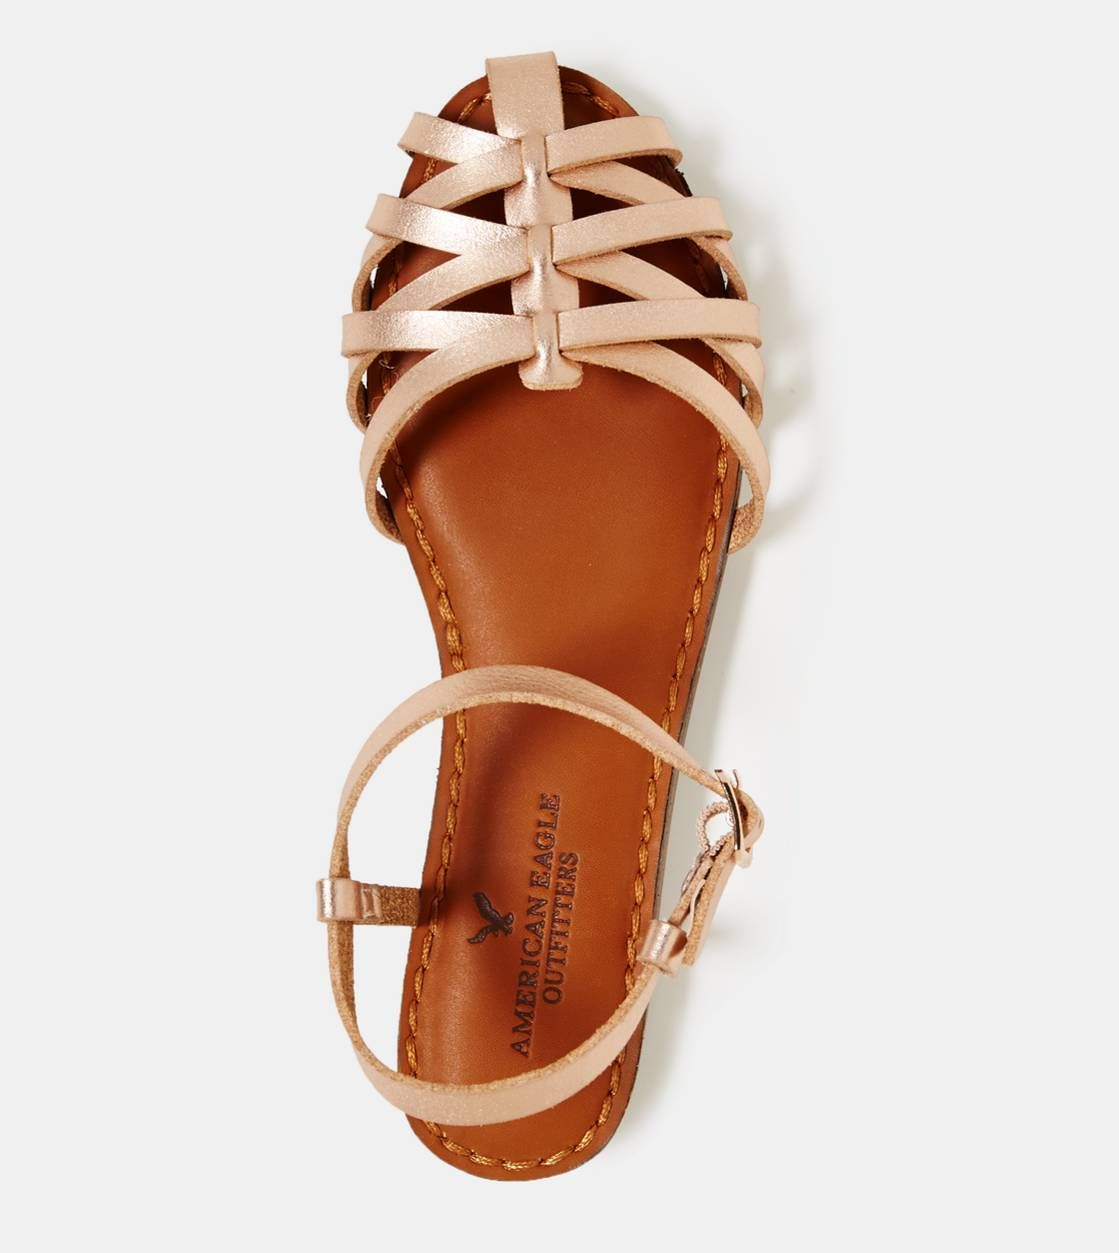 American Eagle Outfitters Men's & Women's Clothing, Shoes & Accessories.  Rose Gold SandalsRose ...